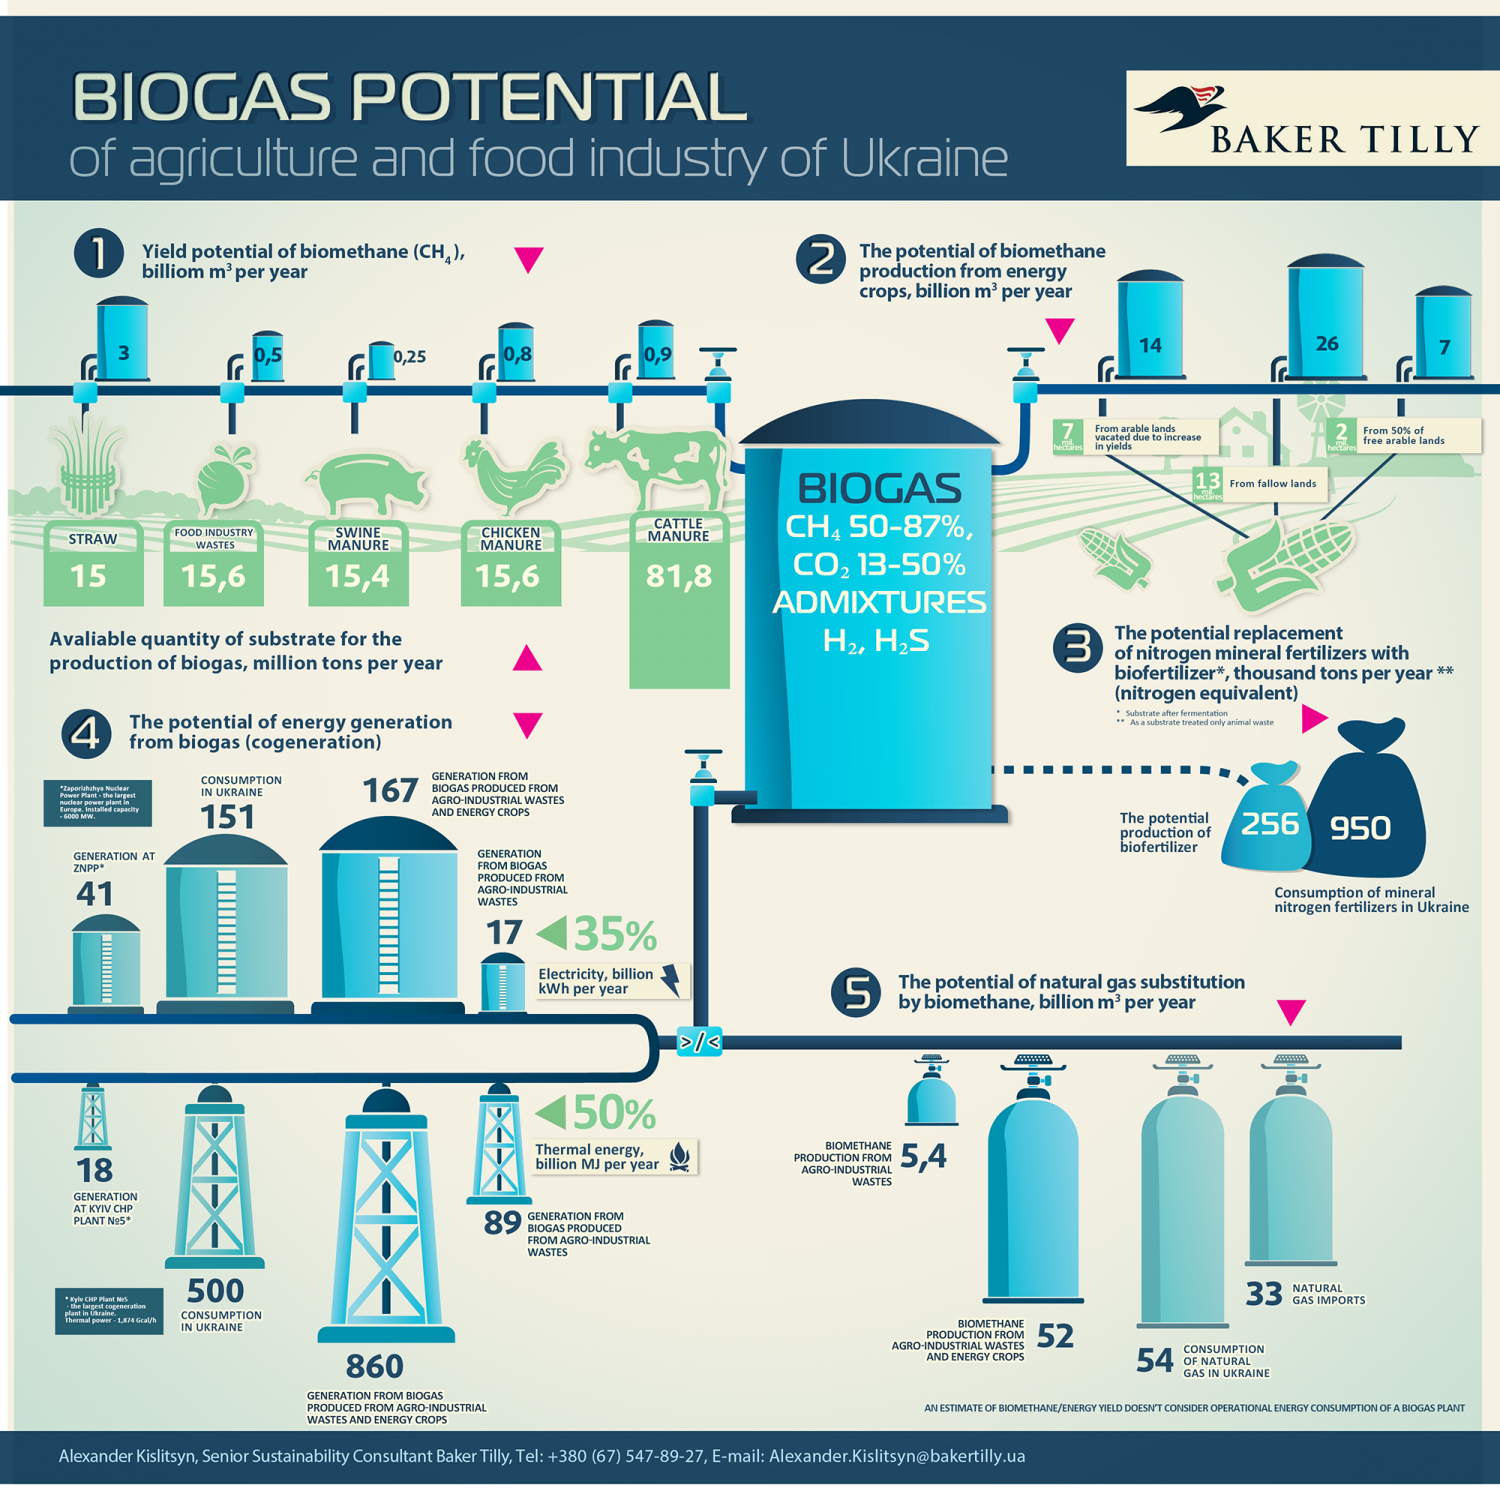 Biogas Potential Of Agriculture And Food Industry of Ukraine ...